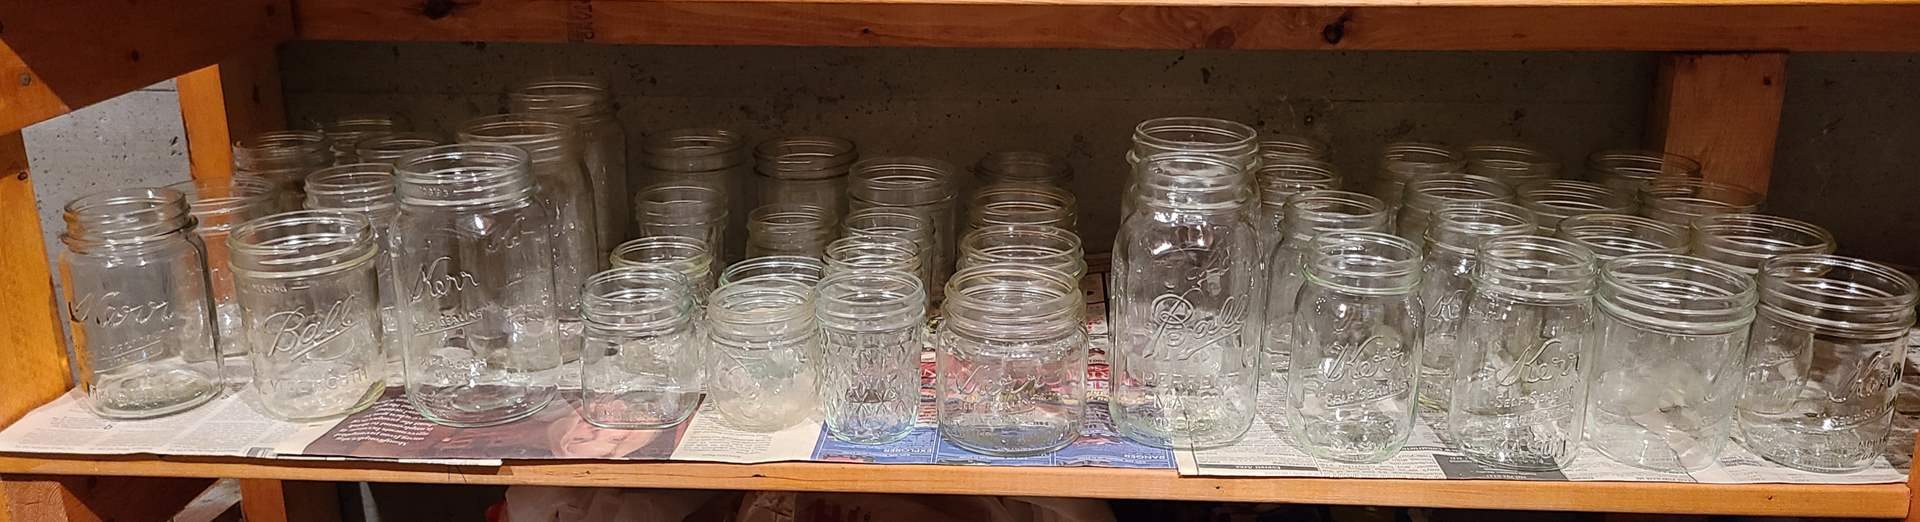 Lot#118 - Mixed Lot of 40+ Vintage Ball and Kerr Canning Jars (main image)